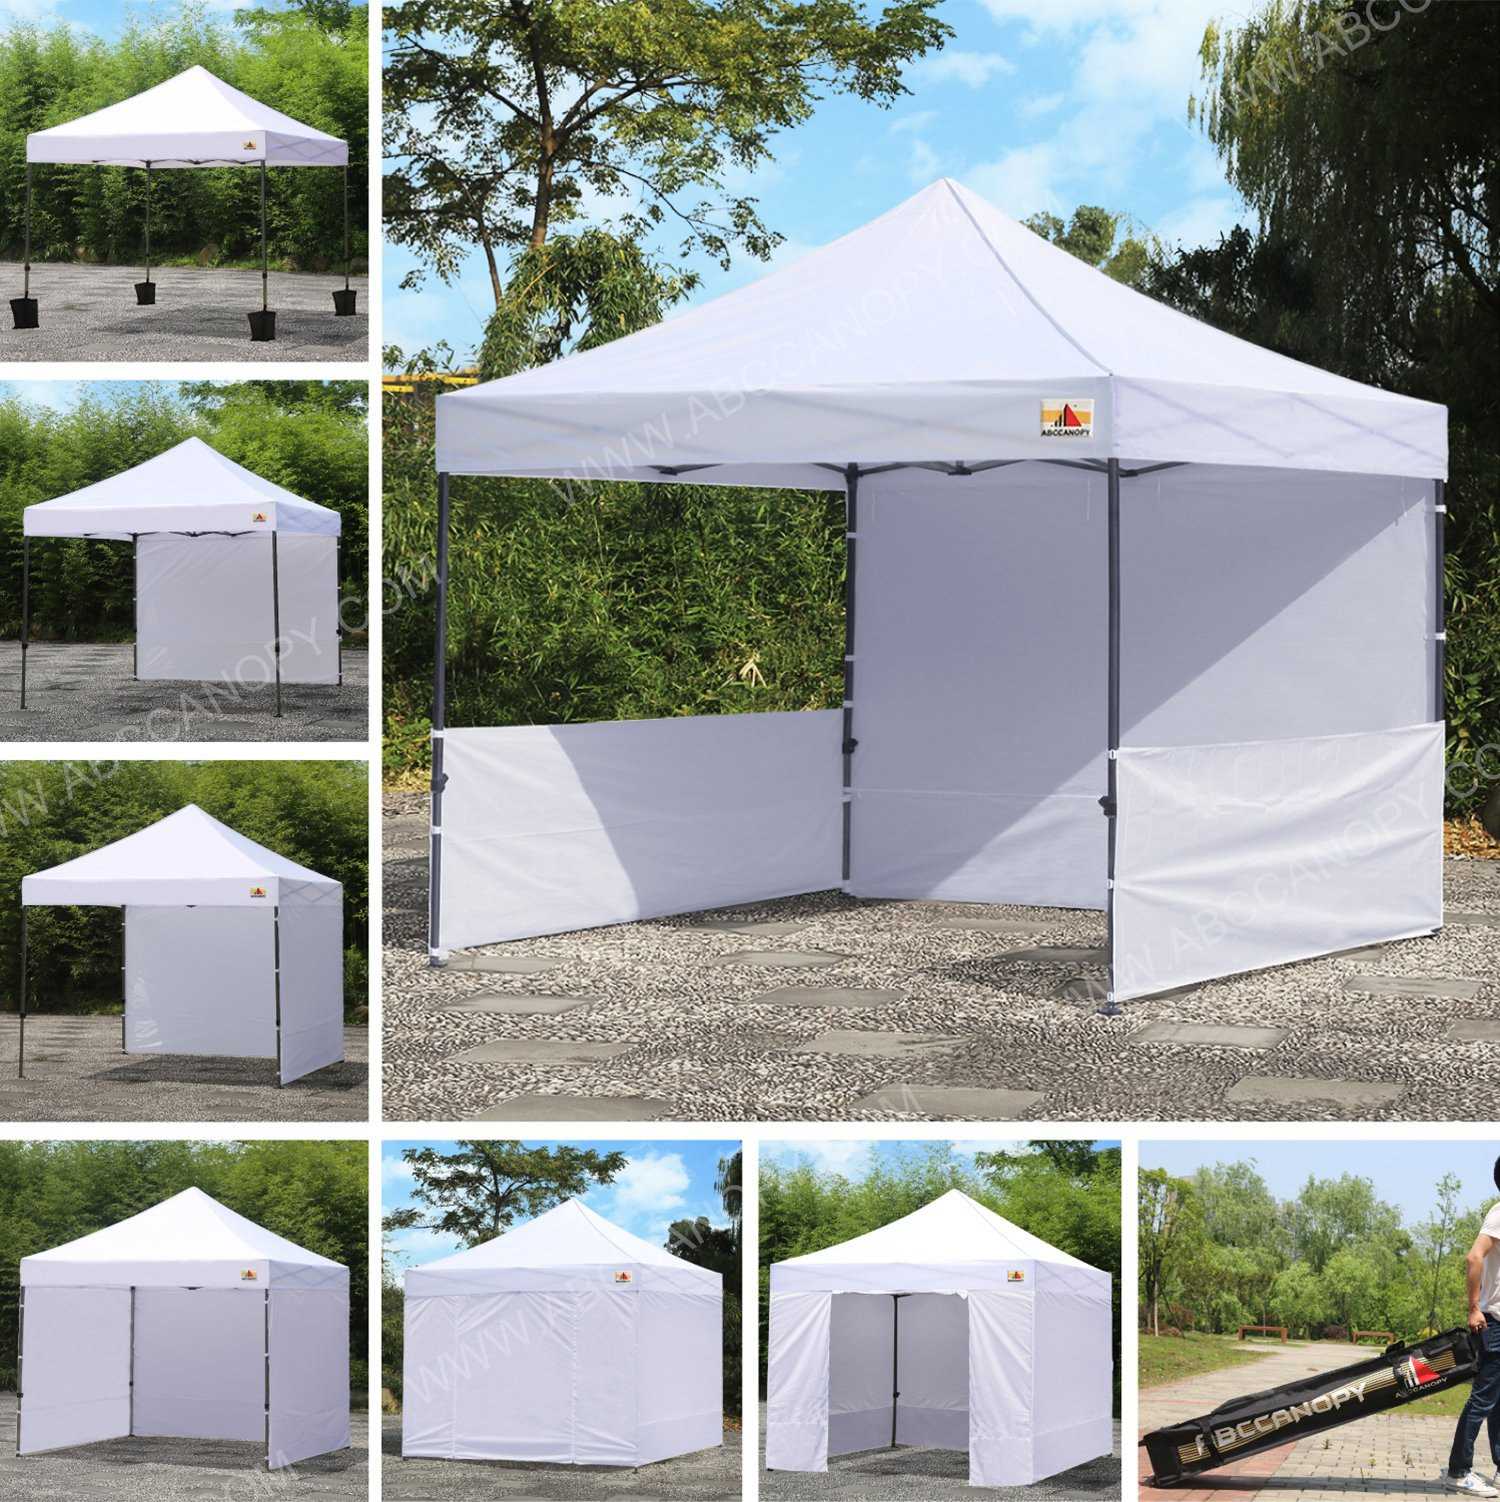 ABCCANOPY 10 x10 Pop Up Canopy Commercial Event Canopy Market Stall Canopy Booth Outdoor Trade Show Booth With Wheeled Carry Bags by abccanopy (Image #1)